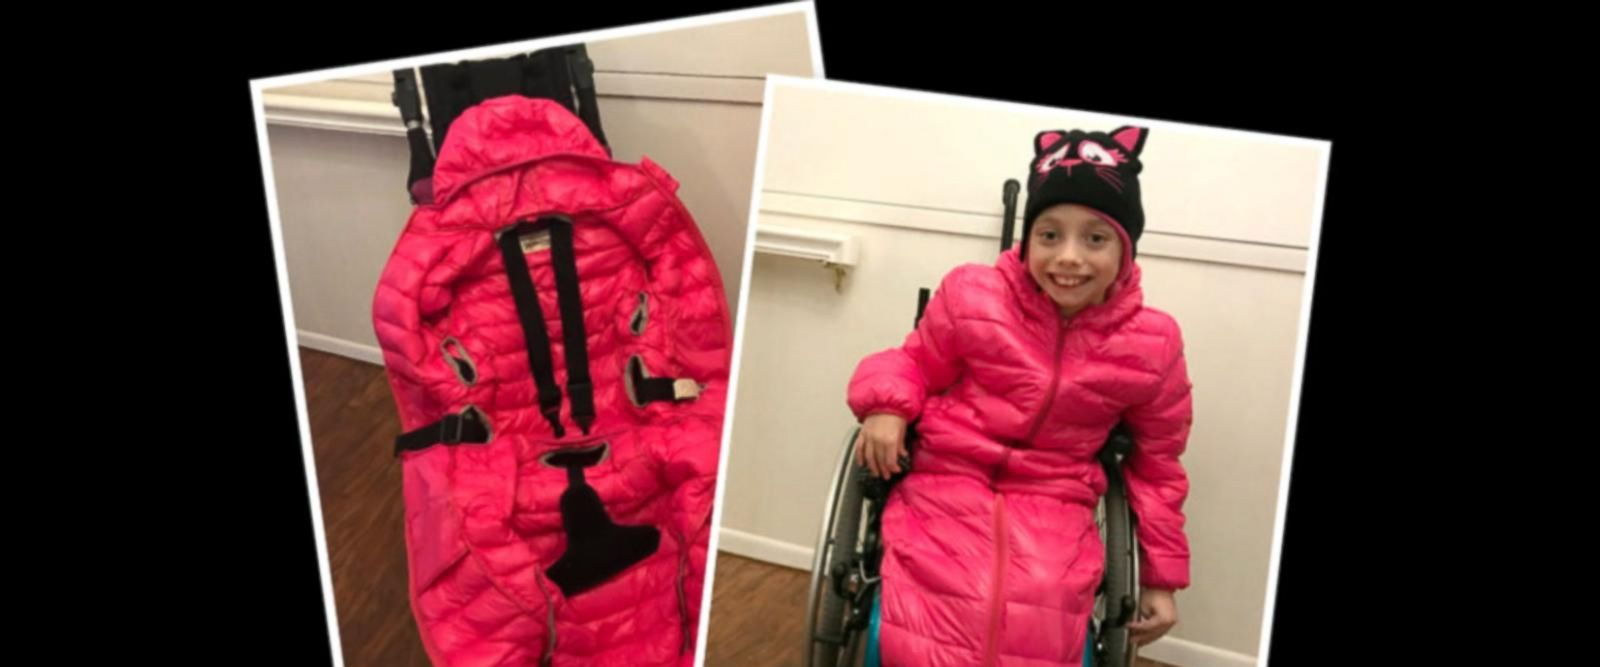 VIDEO: 9-year-old girl in wheelchair 'saved recess'